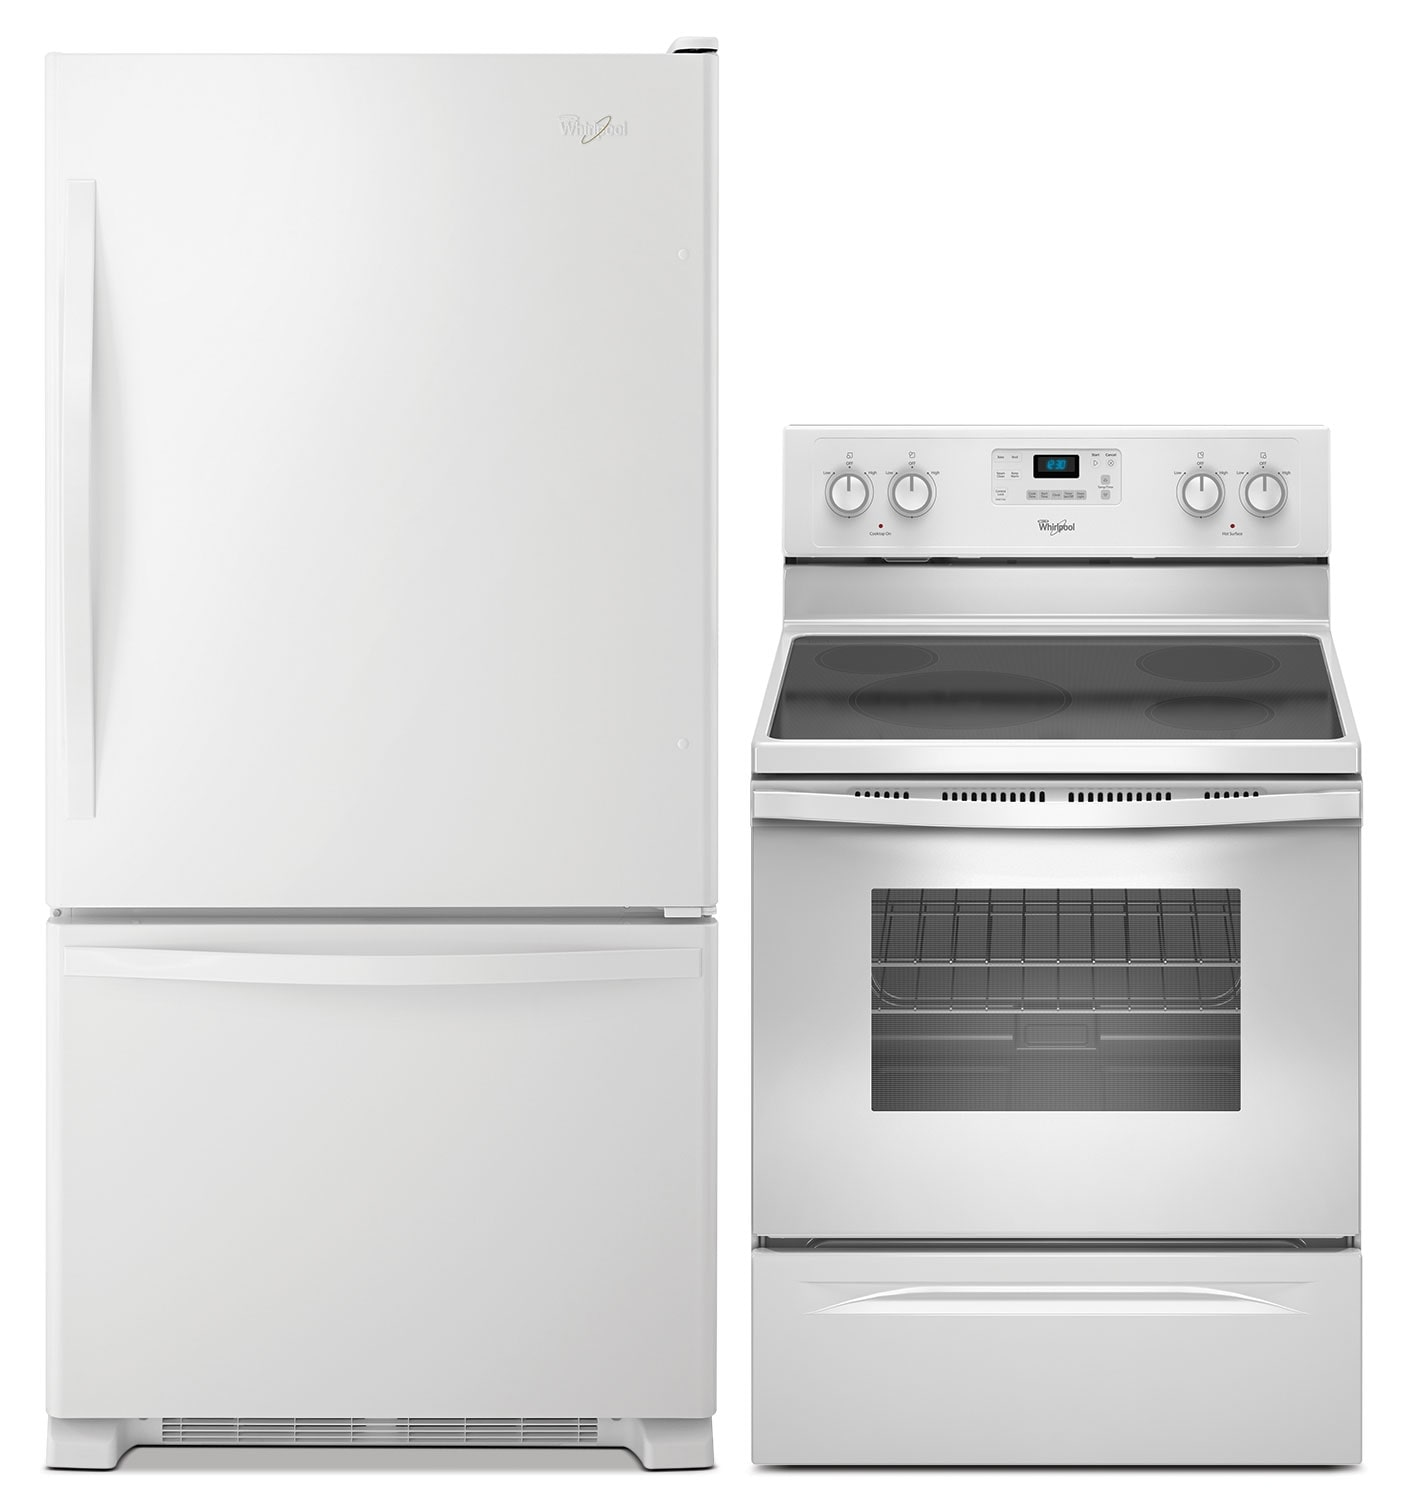 Refrigerators and Freezers - Whirlpool 18.5 Cu. Ft. Refrigerator and Free-Standing Range with Steam - White